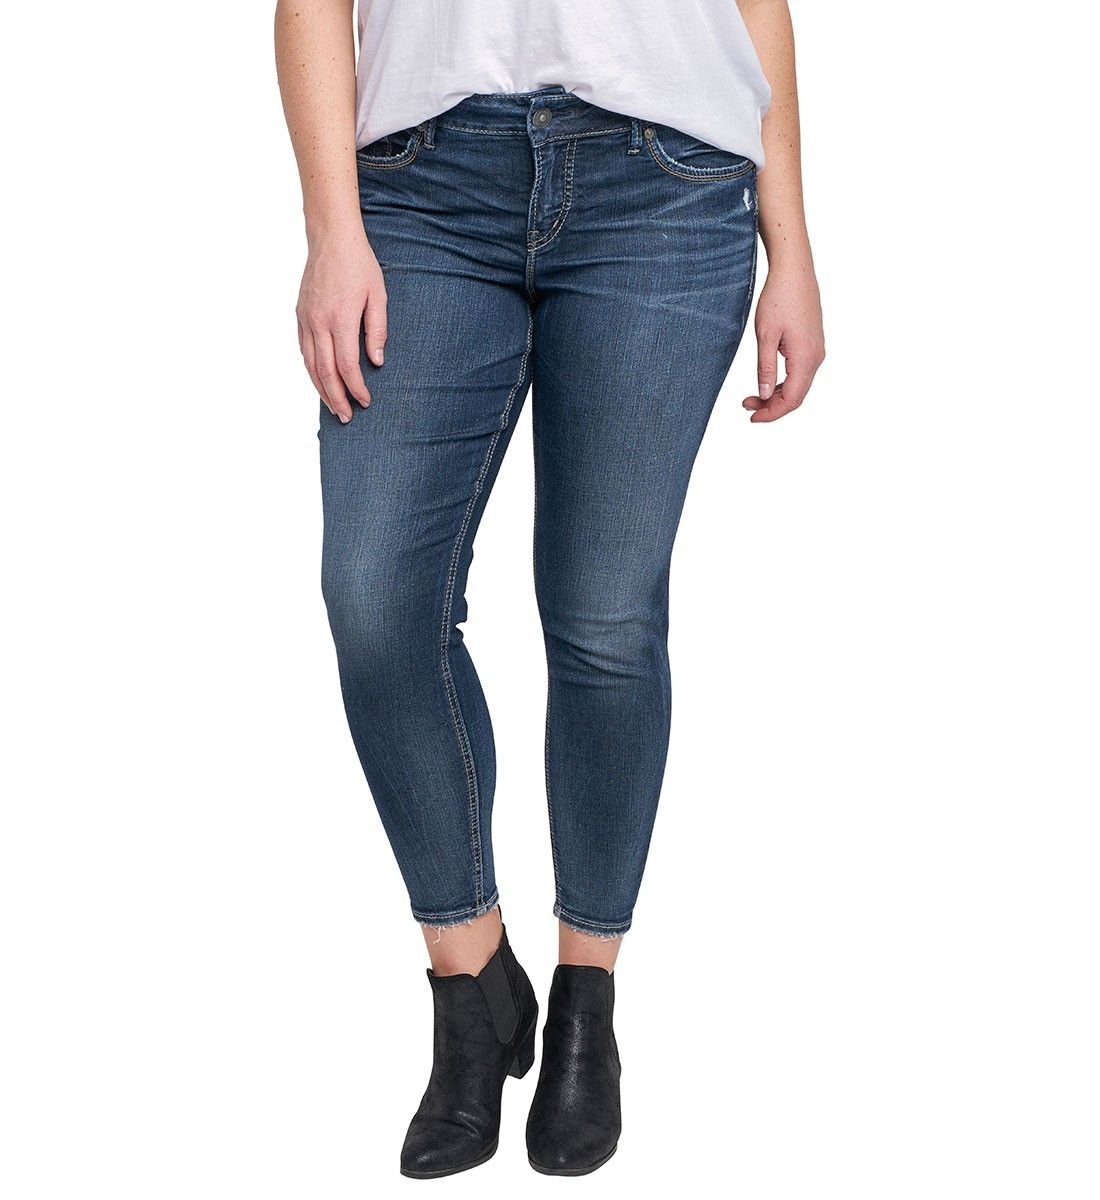 4b97c3f8fbd Plus size Avery Ankle Skinny Jeans - Ideal for those with perfect ...